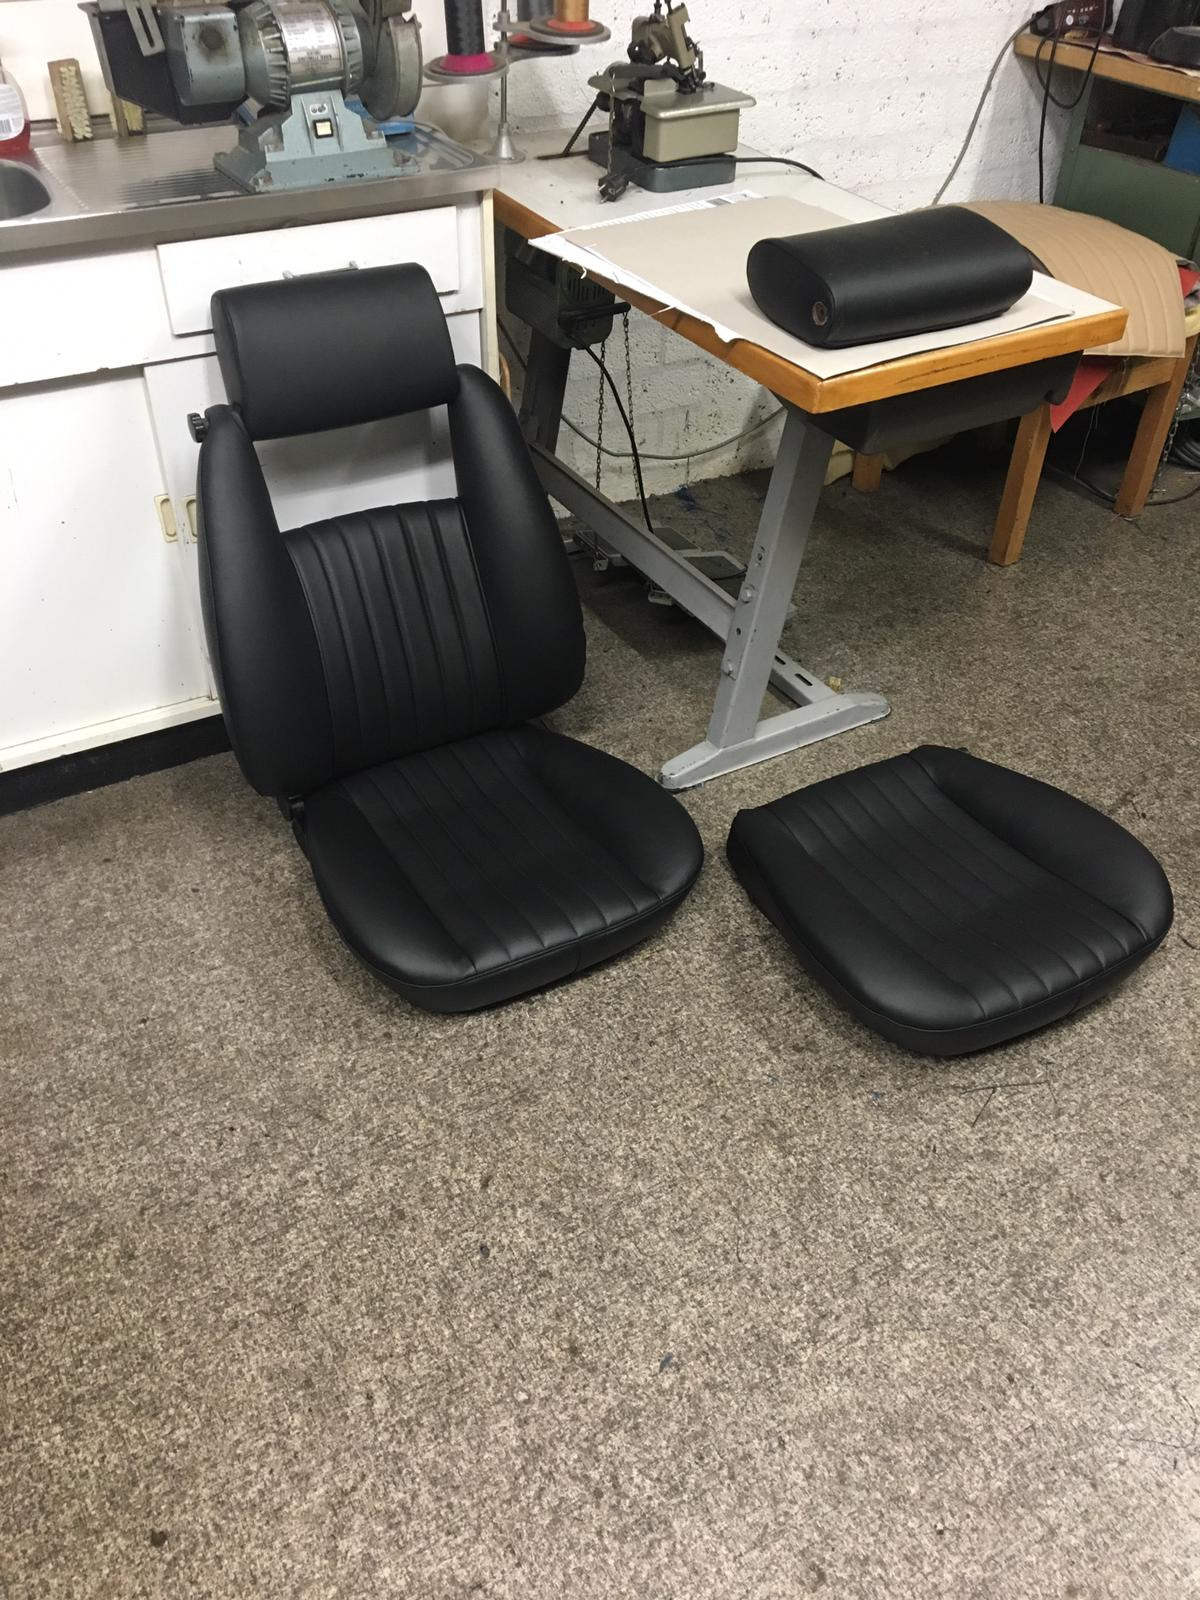 new seat refurbished seat restoration seat restoration 105.93.58.001.00/01 tav 133